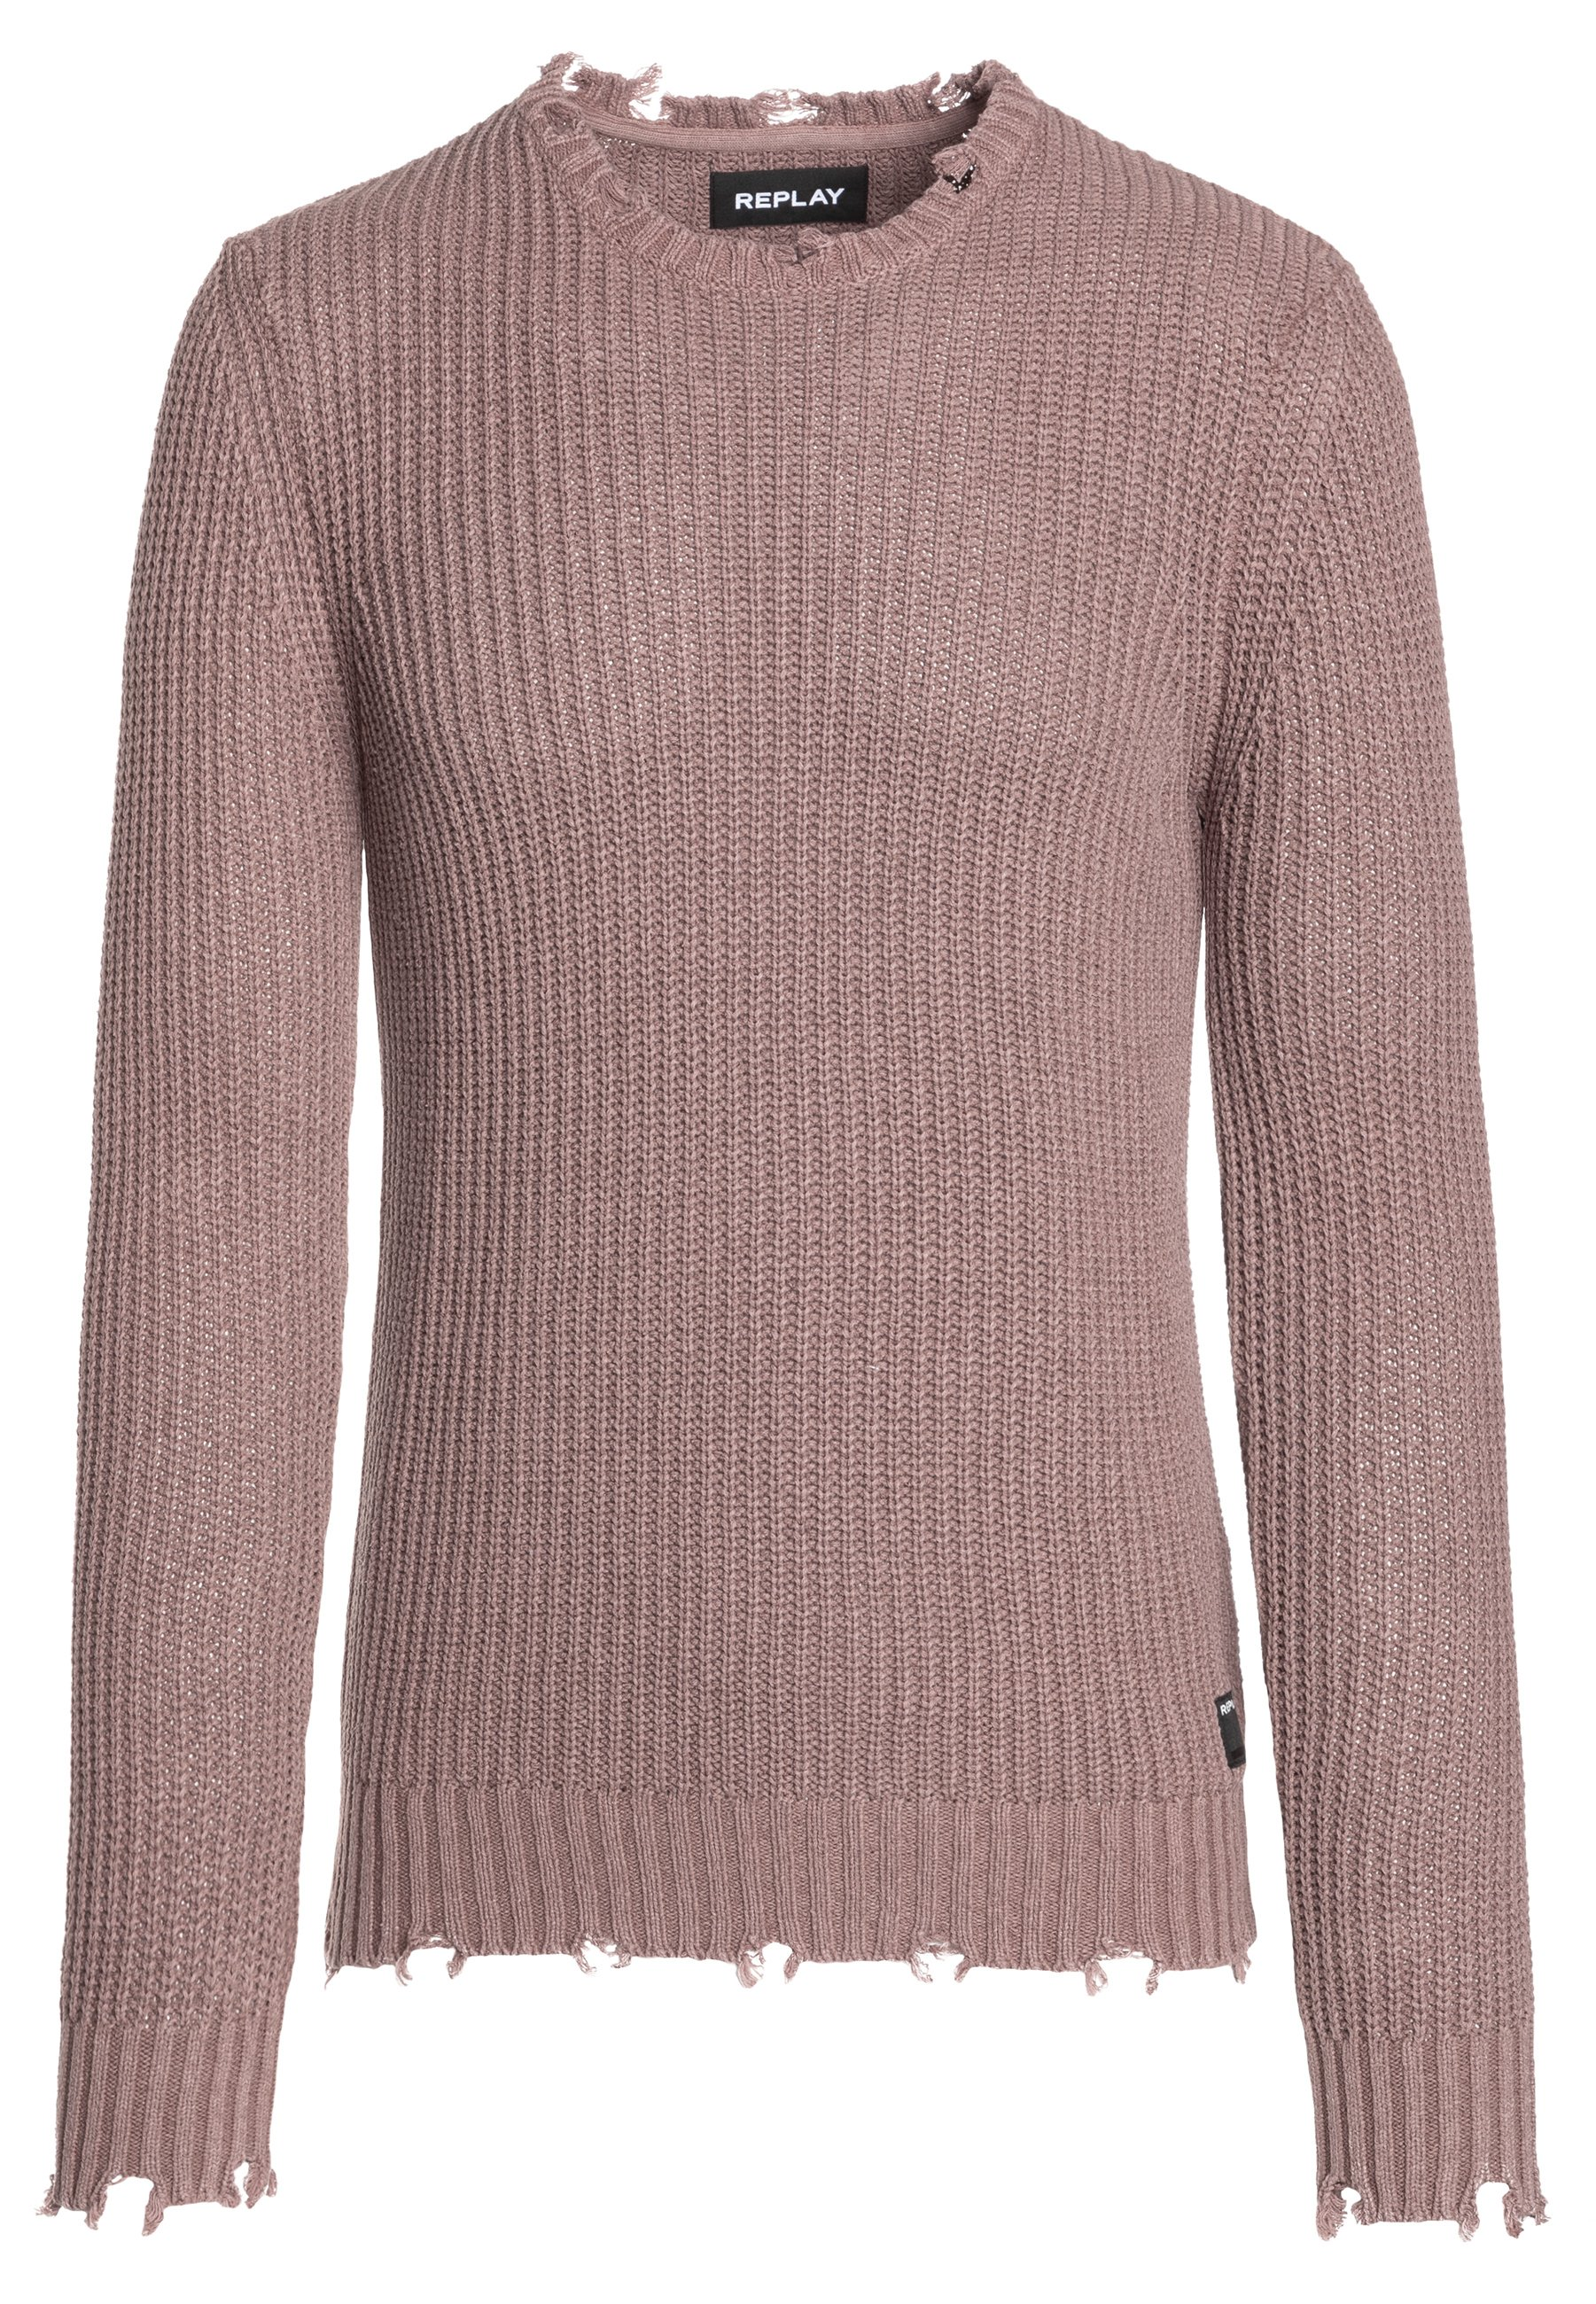 Replay Pullover - clay